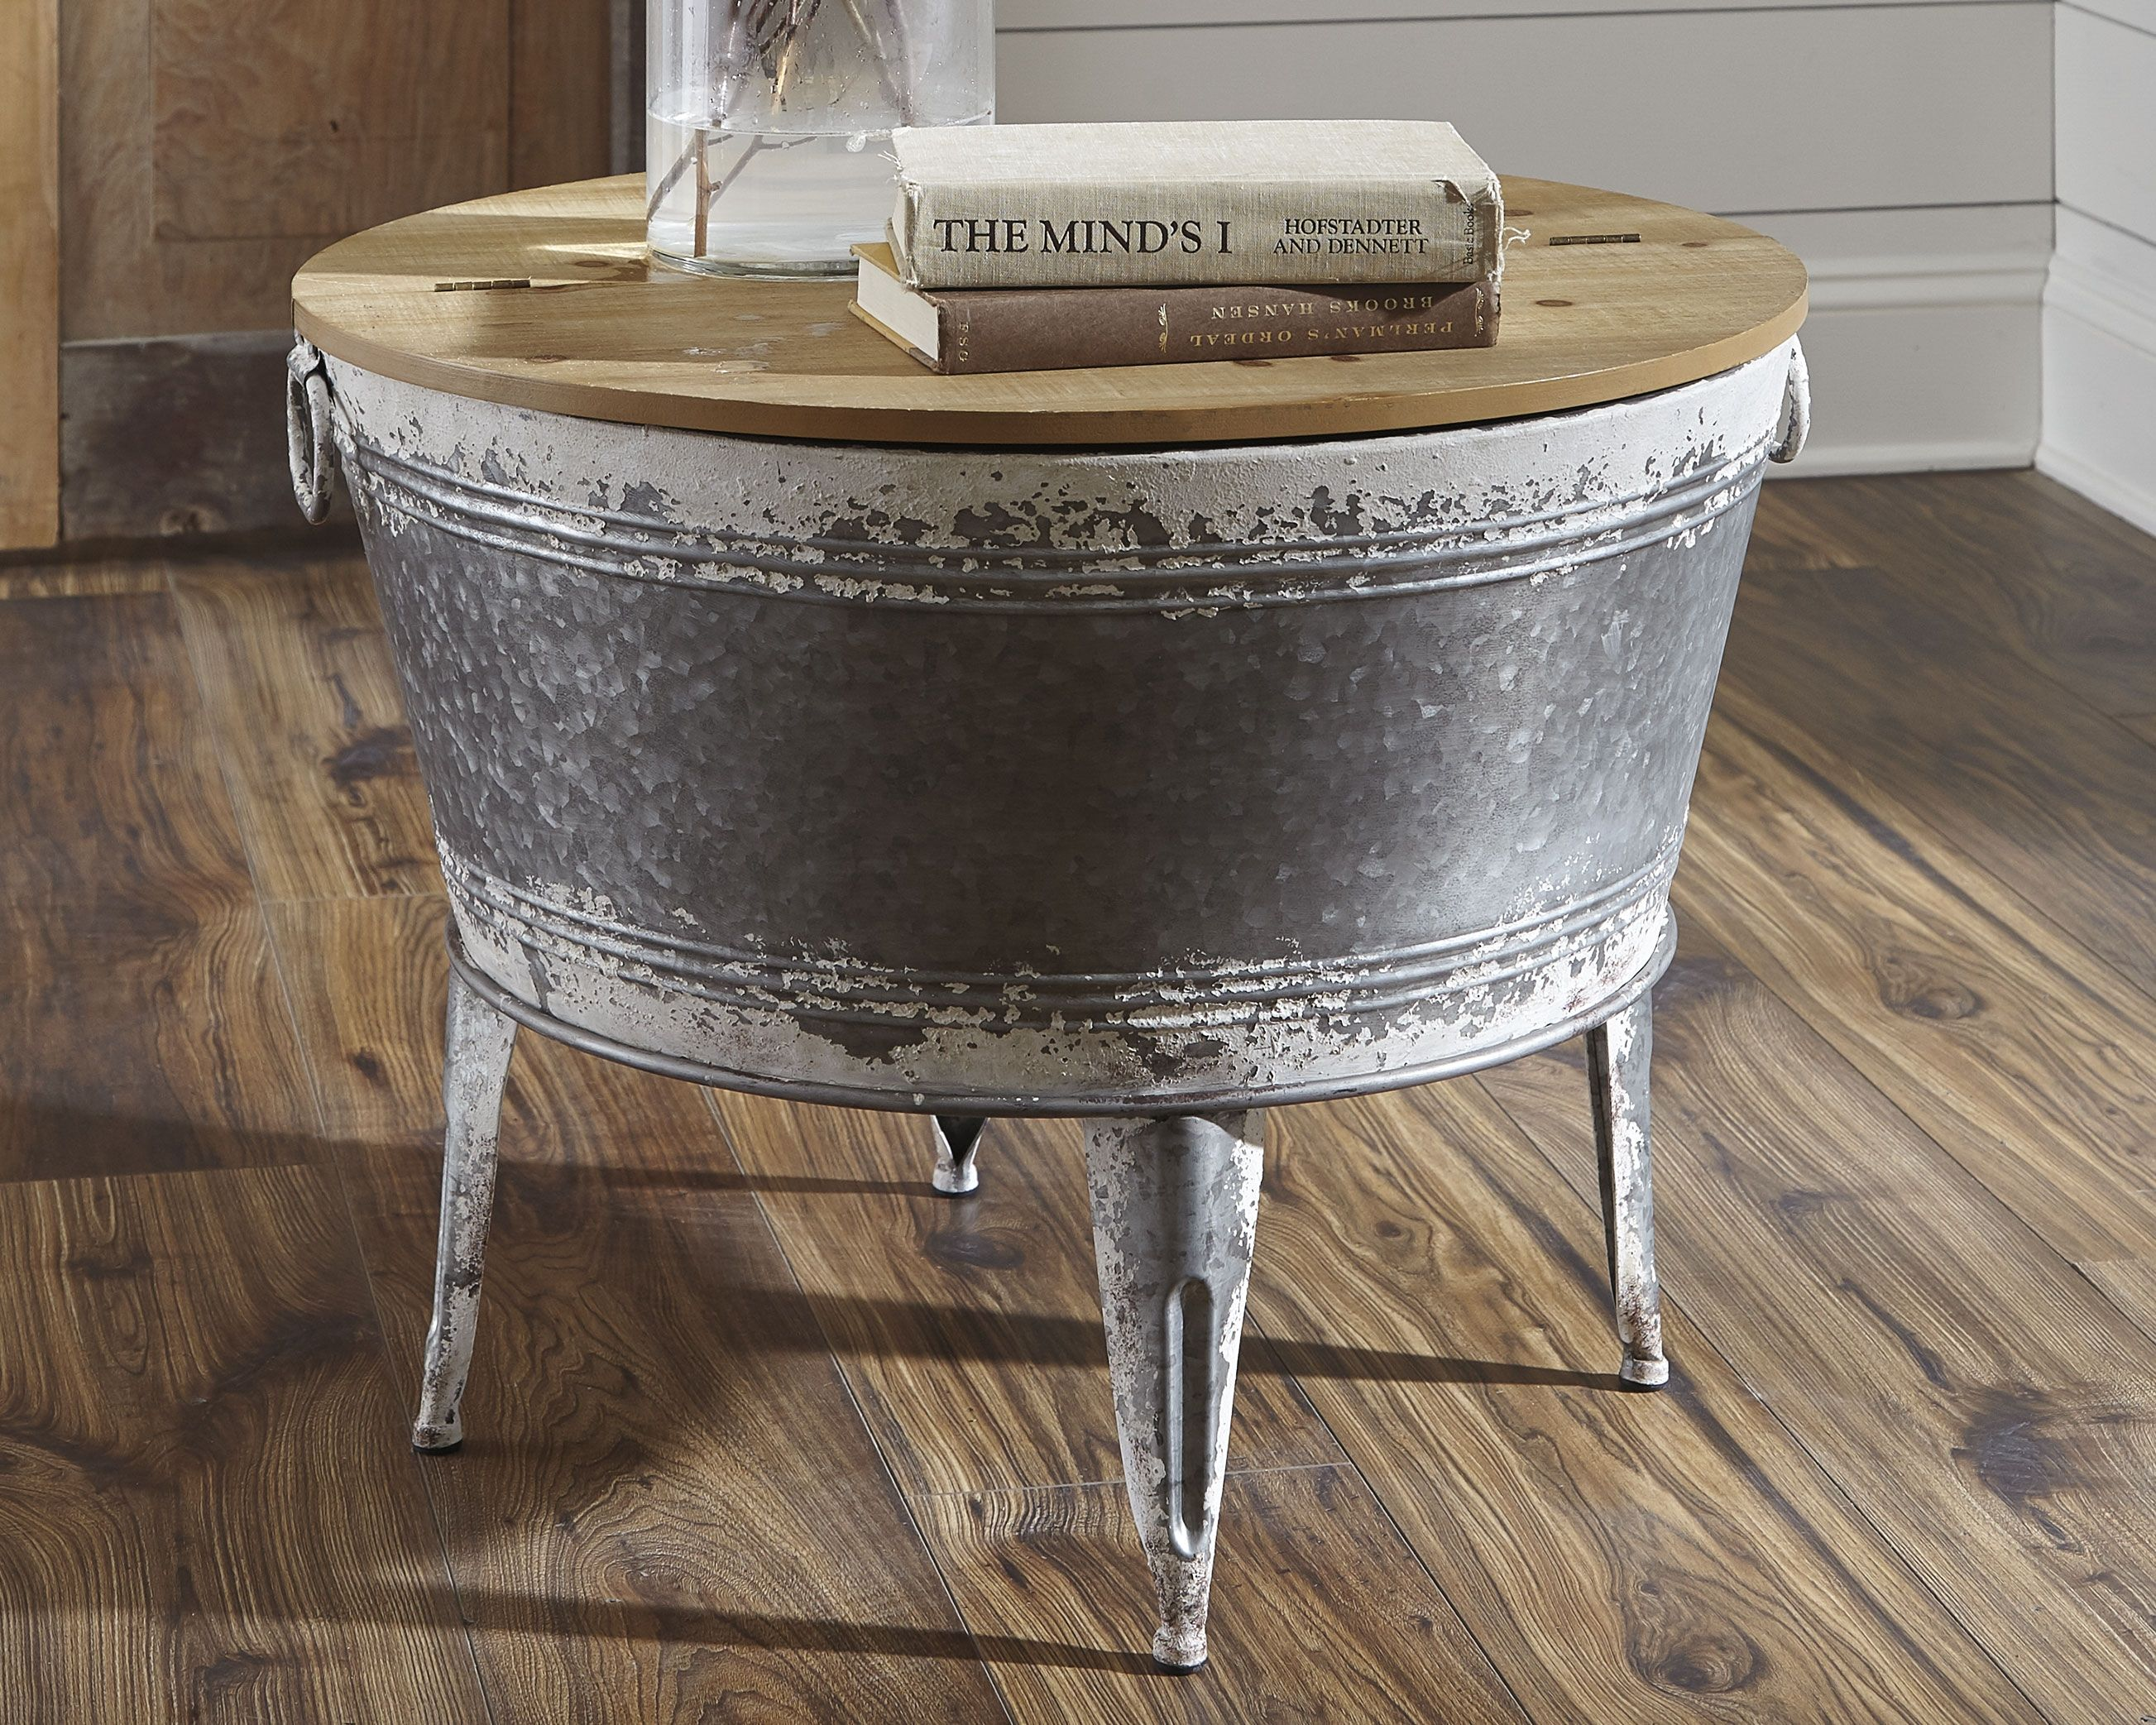 Shellmond Coffee Table With Storage With Images Coffee Table Coffee Table Farmhouse Coffee Table With Storage